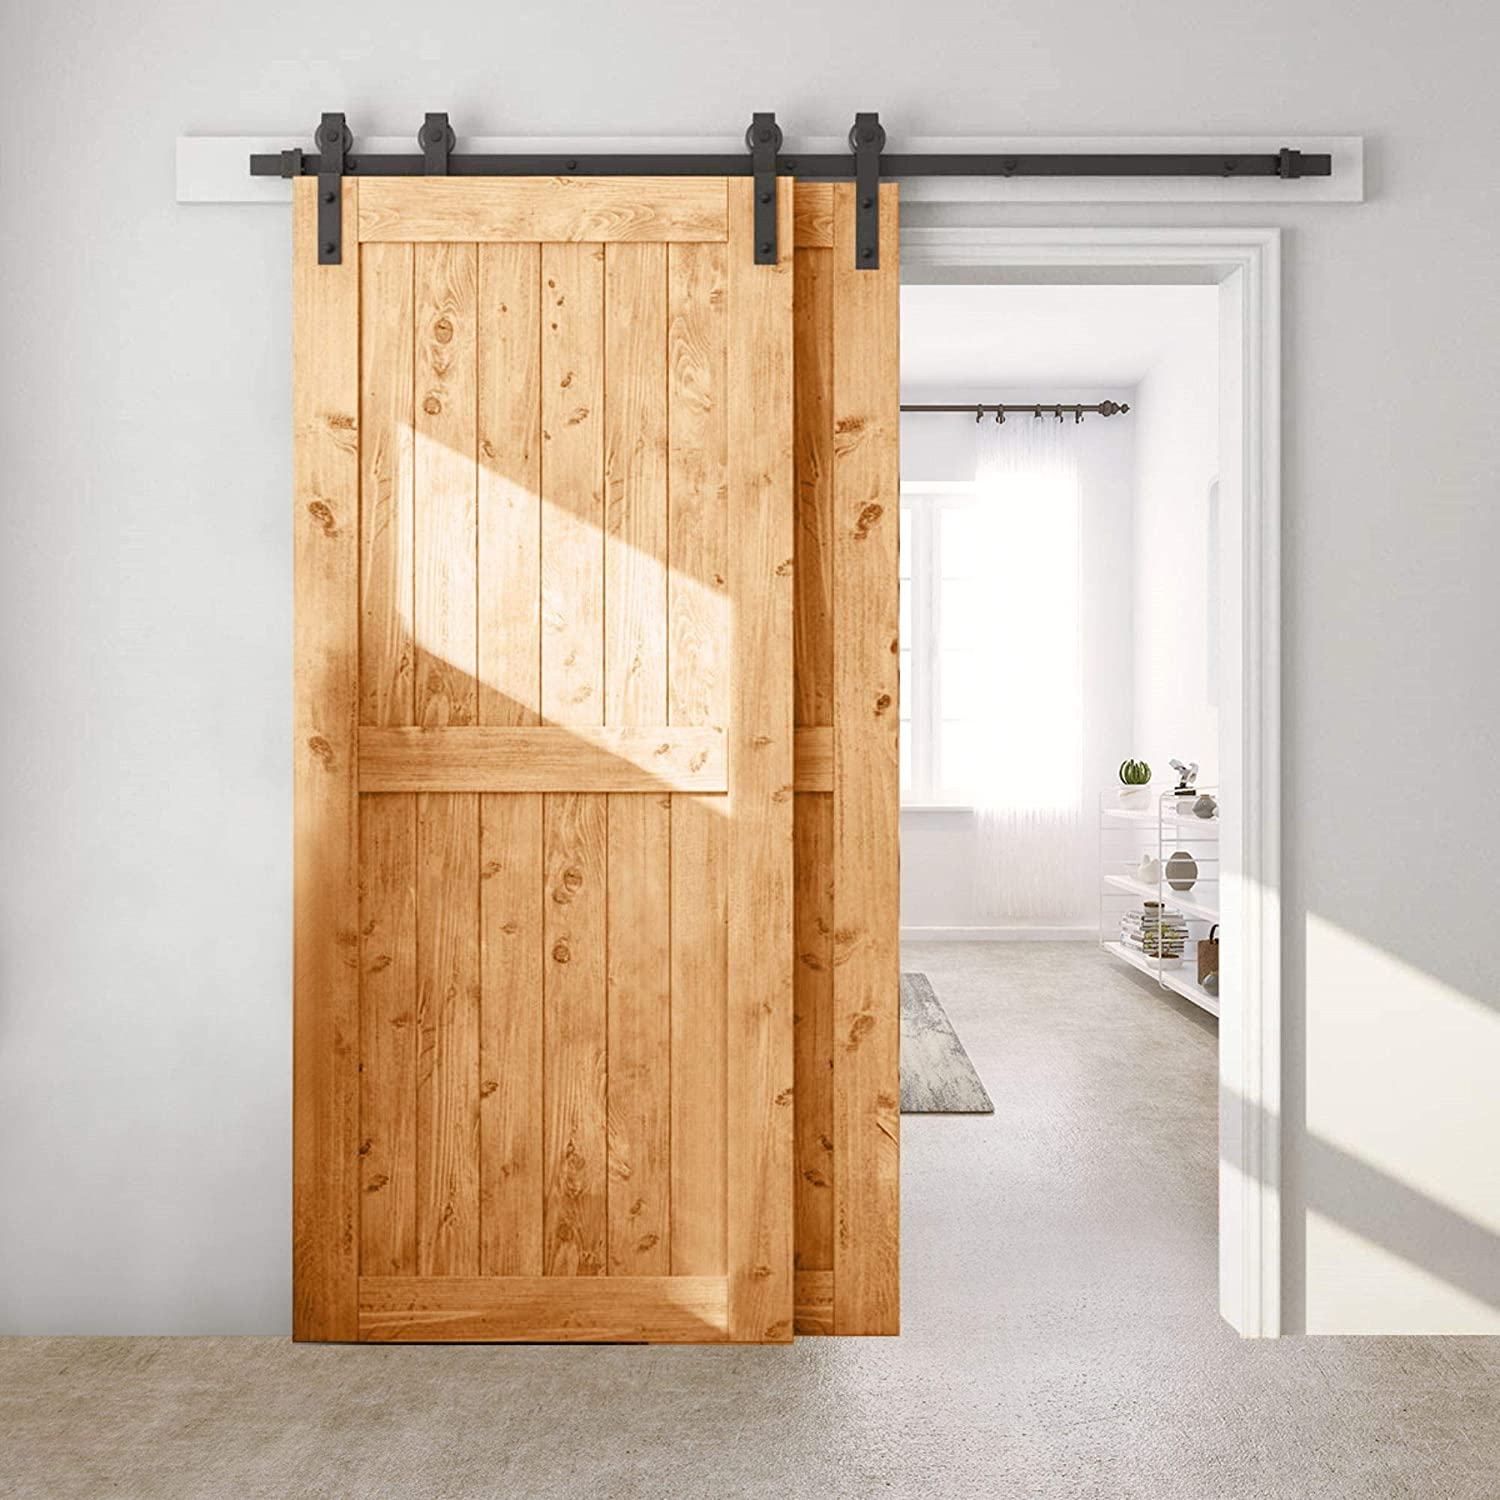 Bronco Hardware Heavy Duty Single Track Bypass Barn Door Hardware Kit 5FT, Perfect for Closet, Easy Installation, Slide Smoothly & Quietly (Hardware Kit Only)